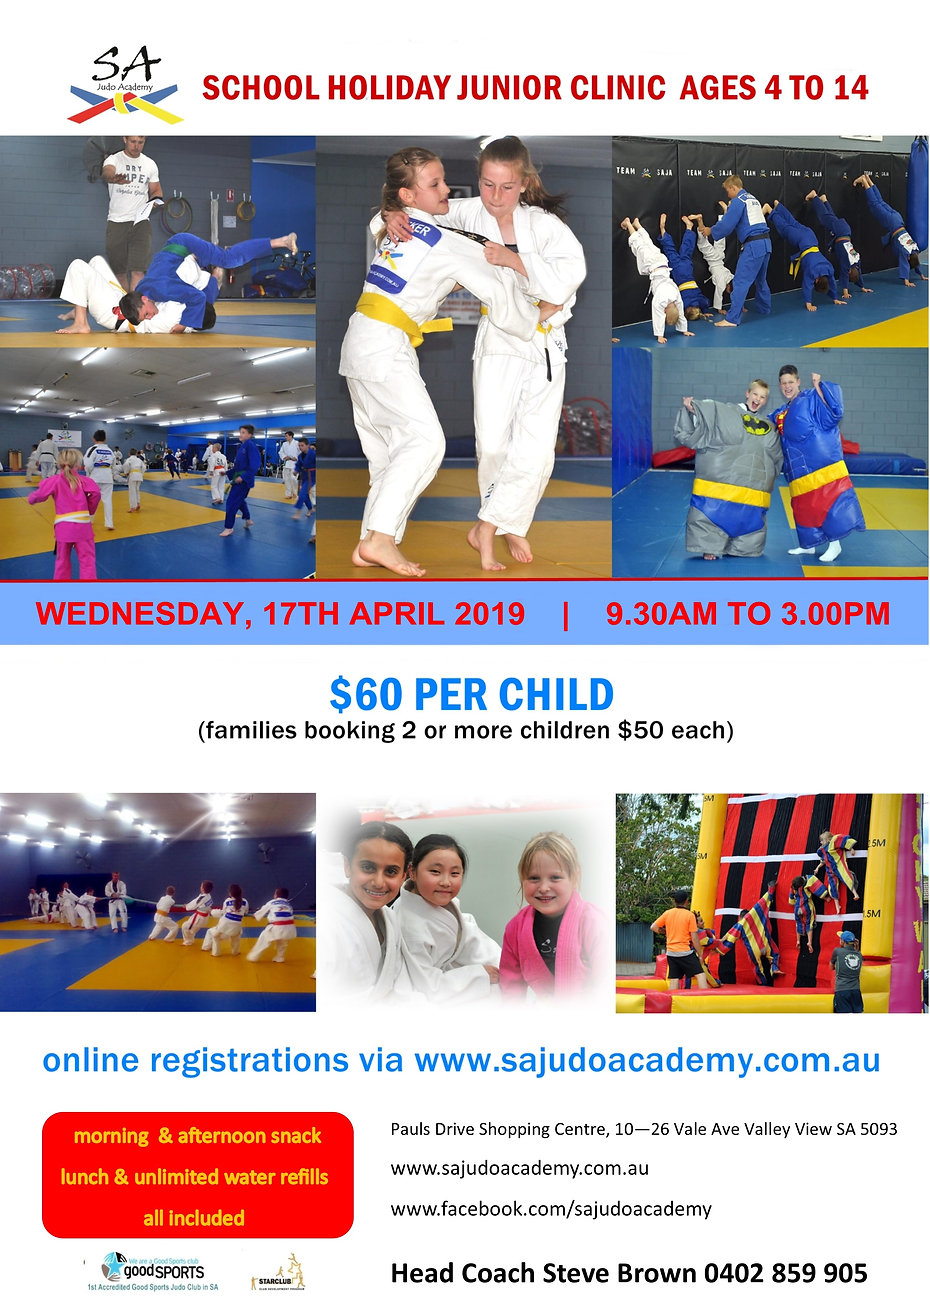 School Holiday Clinic Wed 17th April 201